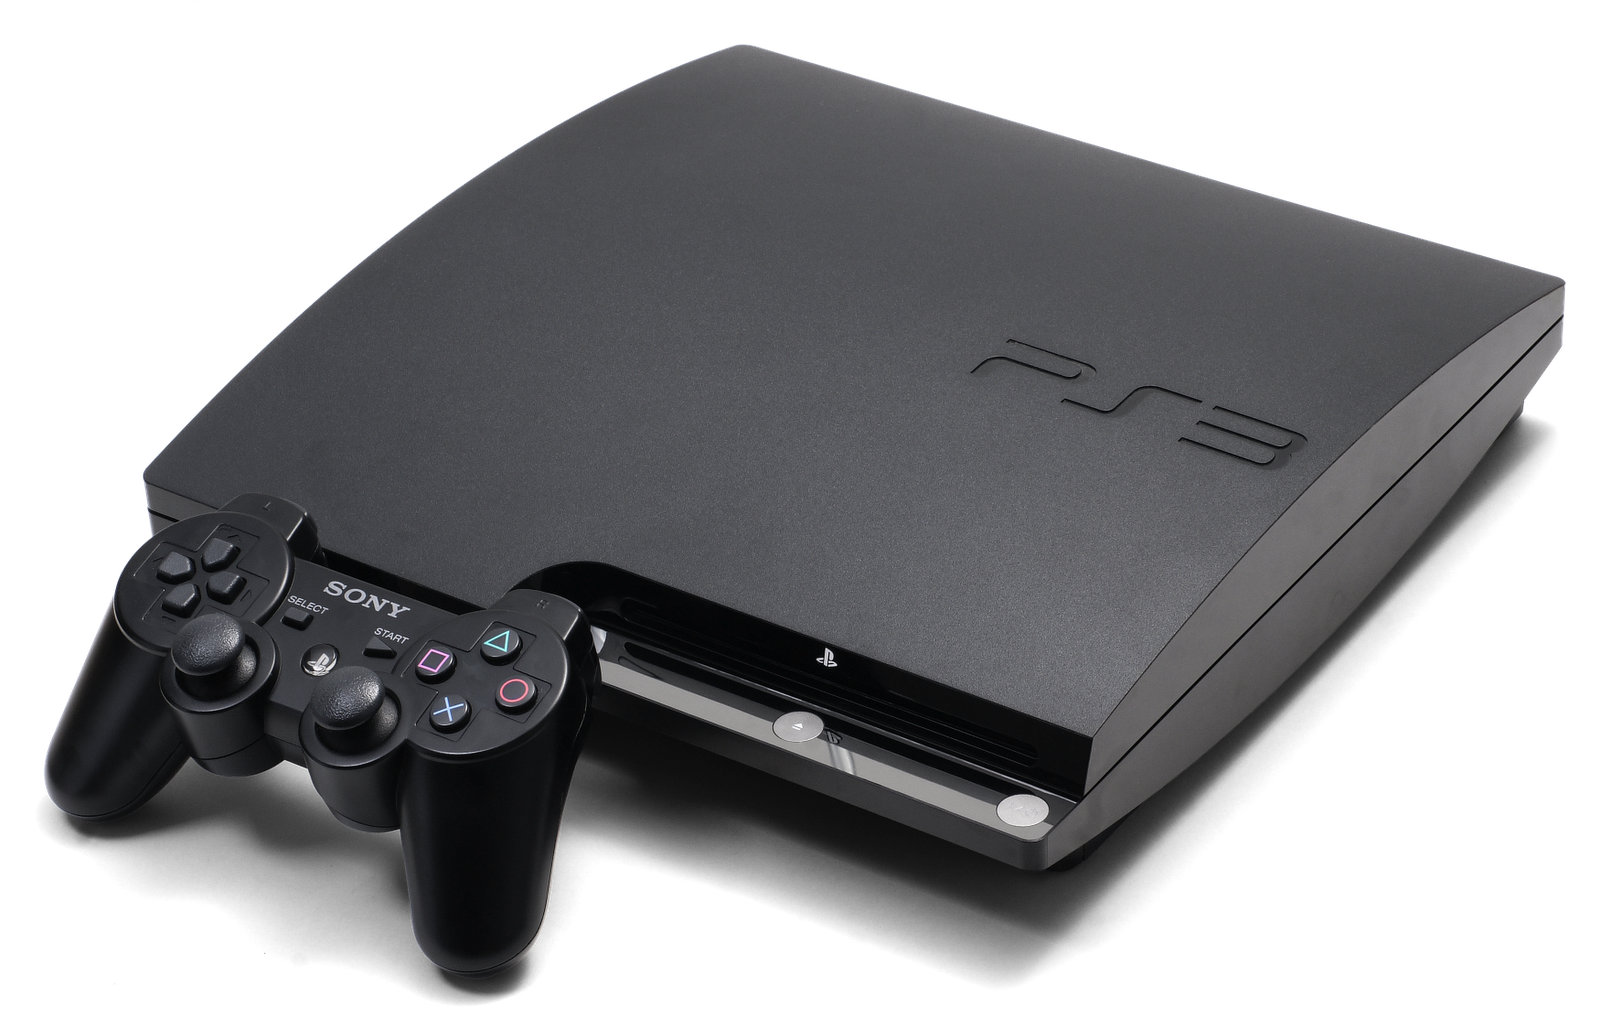 Playstation 3 png. Sony has shipped its